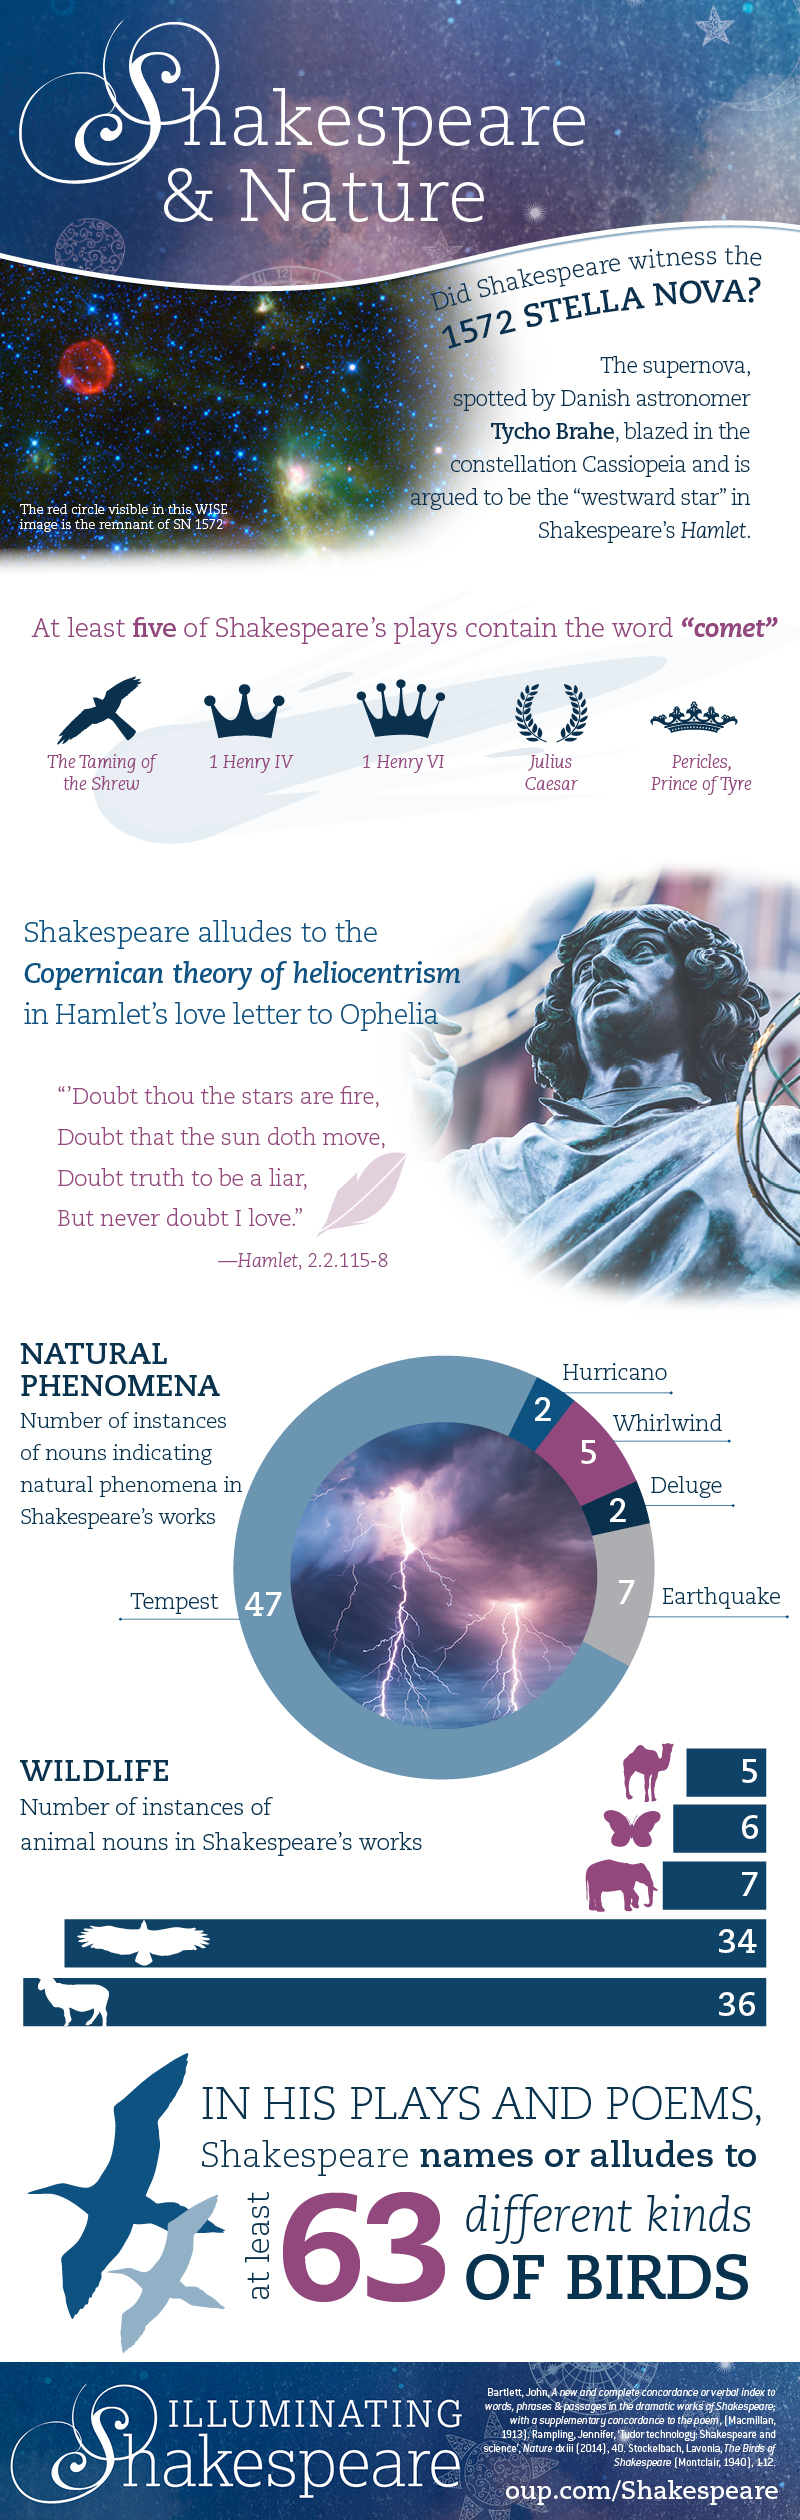 CF_ShakespeareNatureinfographic_110615_Final